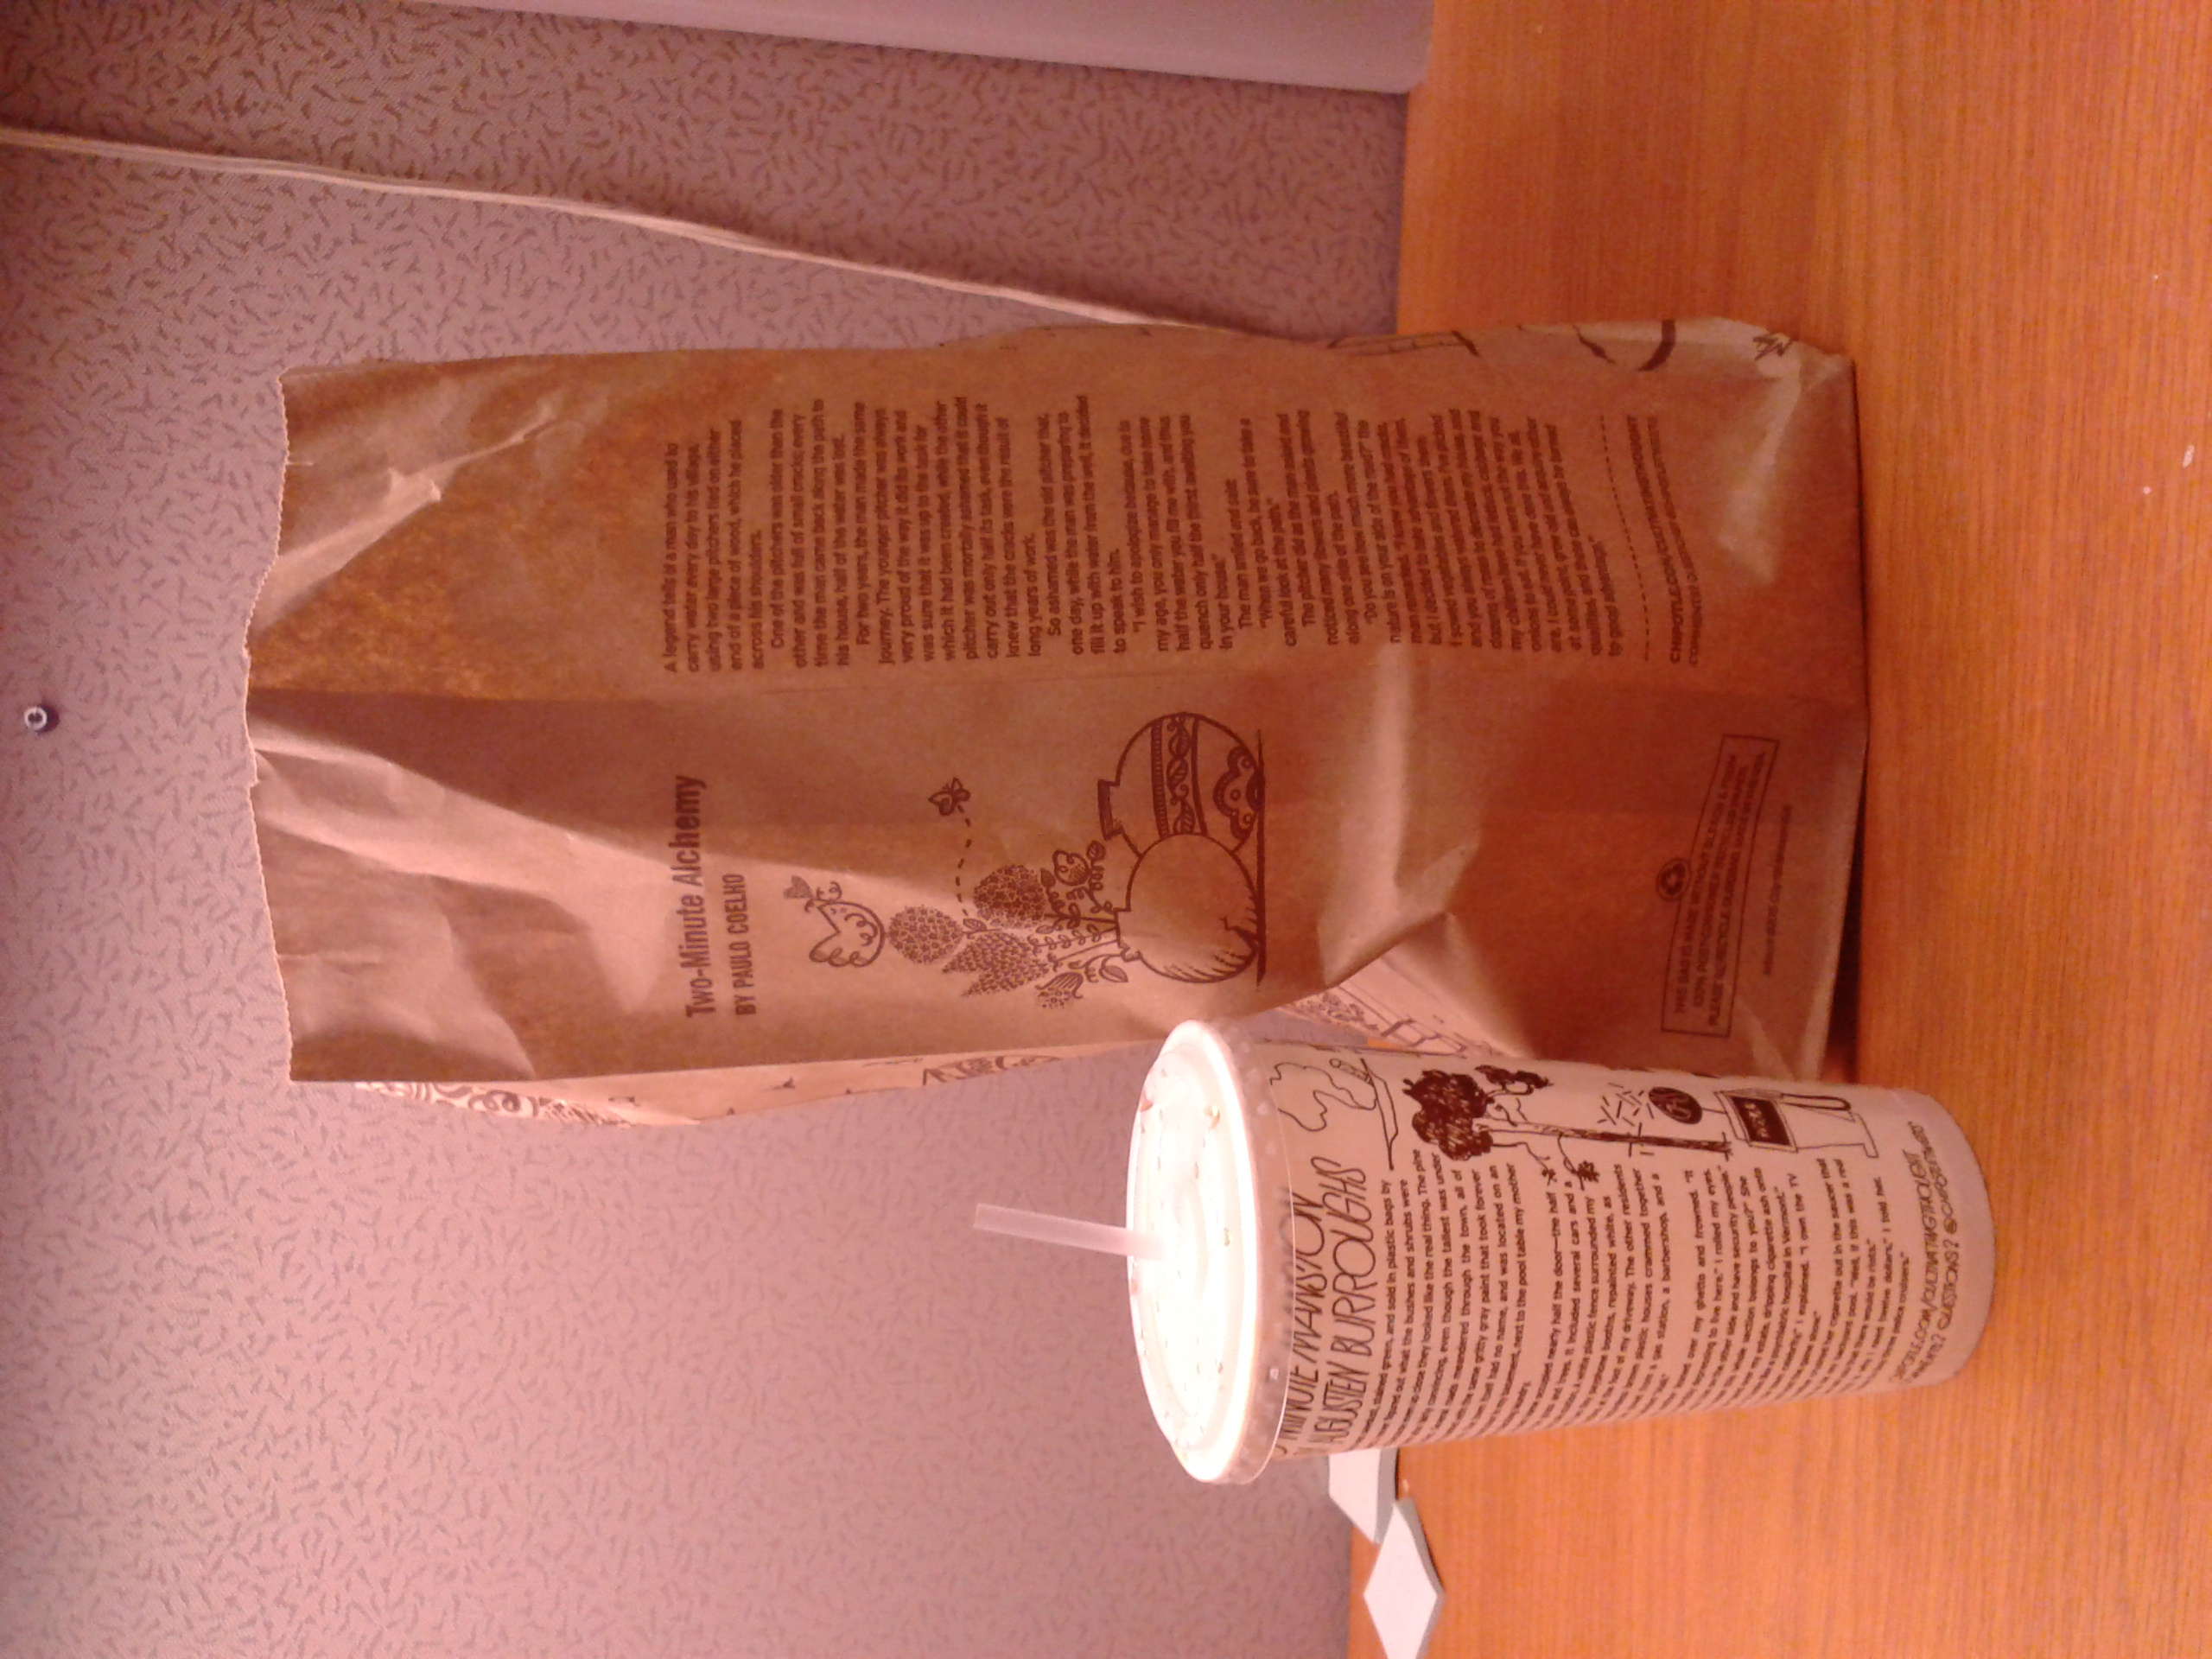 """Cup and bag from the """"Cultivating Thought"""" series, featuring the work of Paulo Coelho and Augusten Burroughs"""